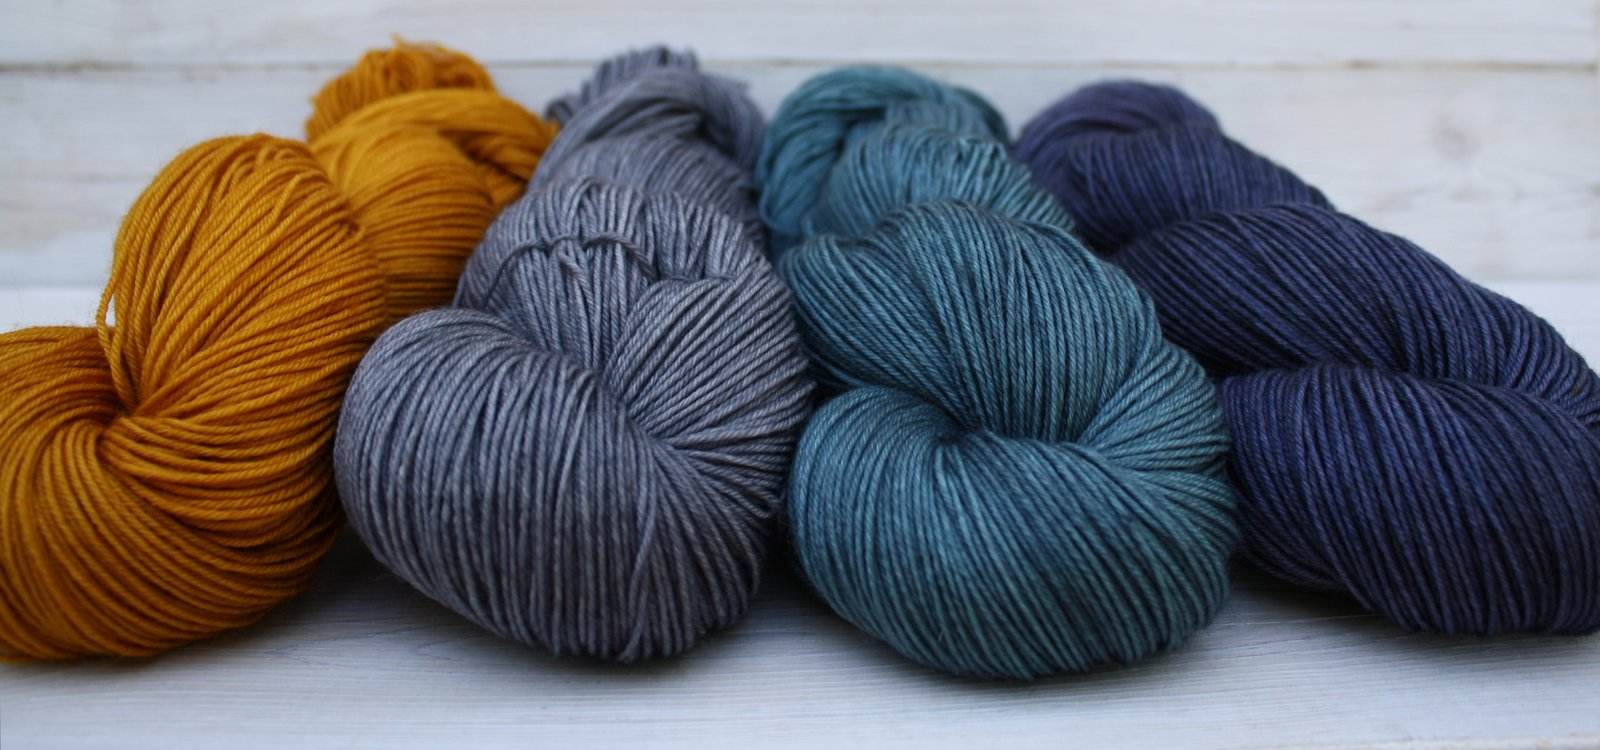 Luna Grey Fiber Arts Celeste Yarn